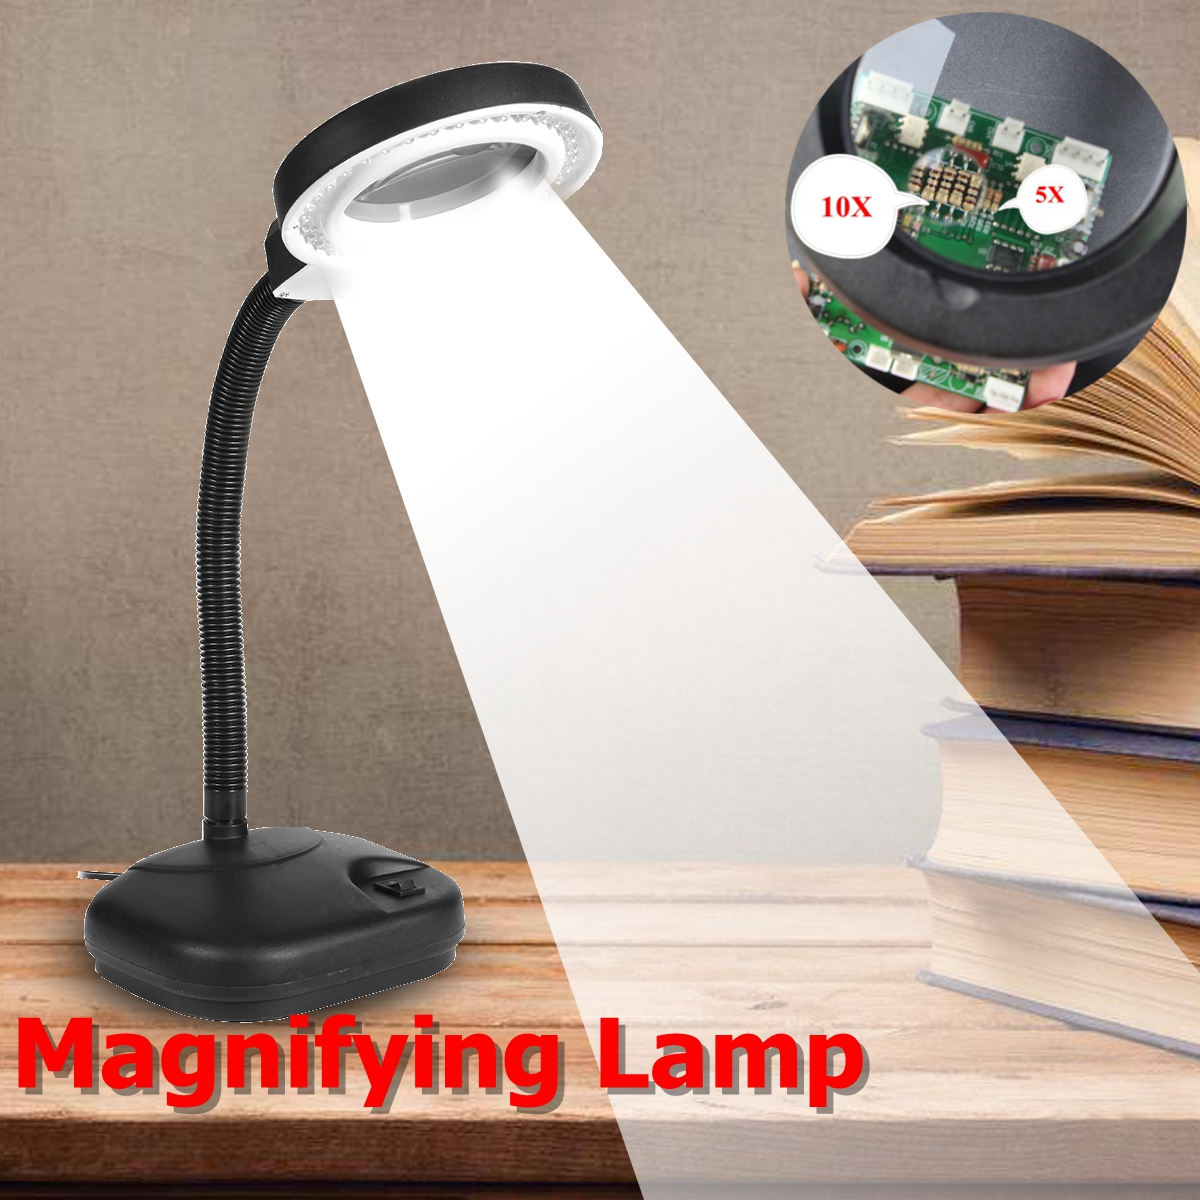 ZEAST 5X 10X Magnifier LED Desk Light Daylight Craft Glass Table Lamp 36 LED Multi-function Desktop Magnifying Lamp le100 multi function desktop socket countertop manual flip table plug multimedia interface